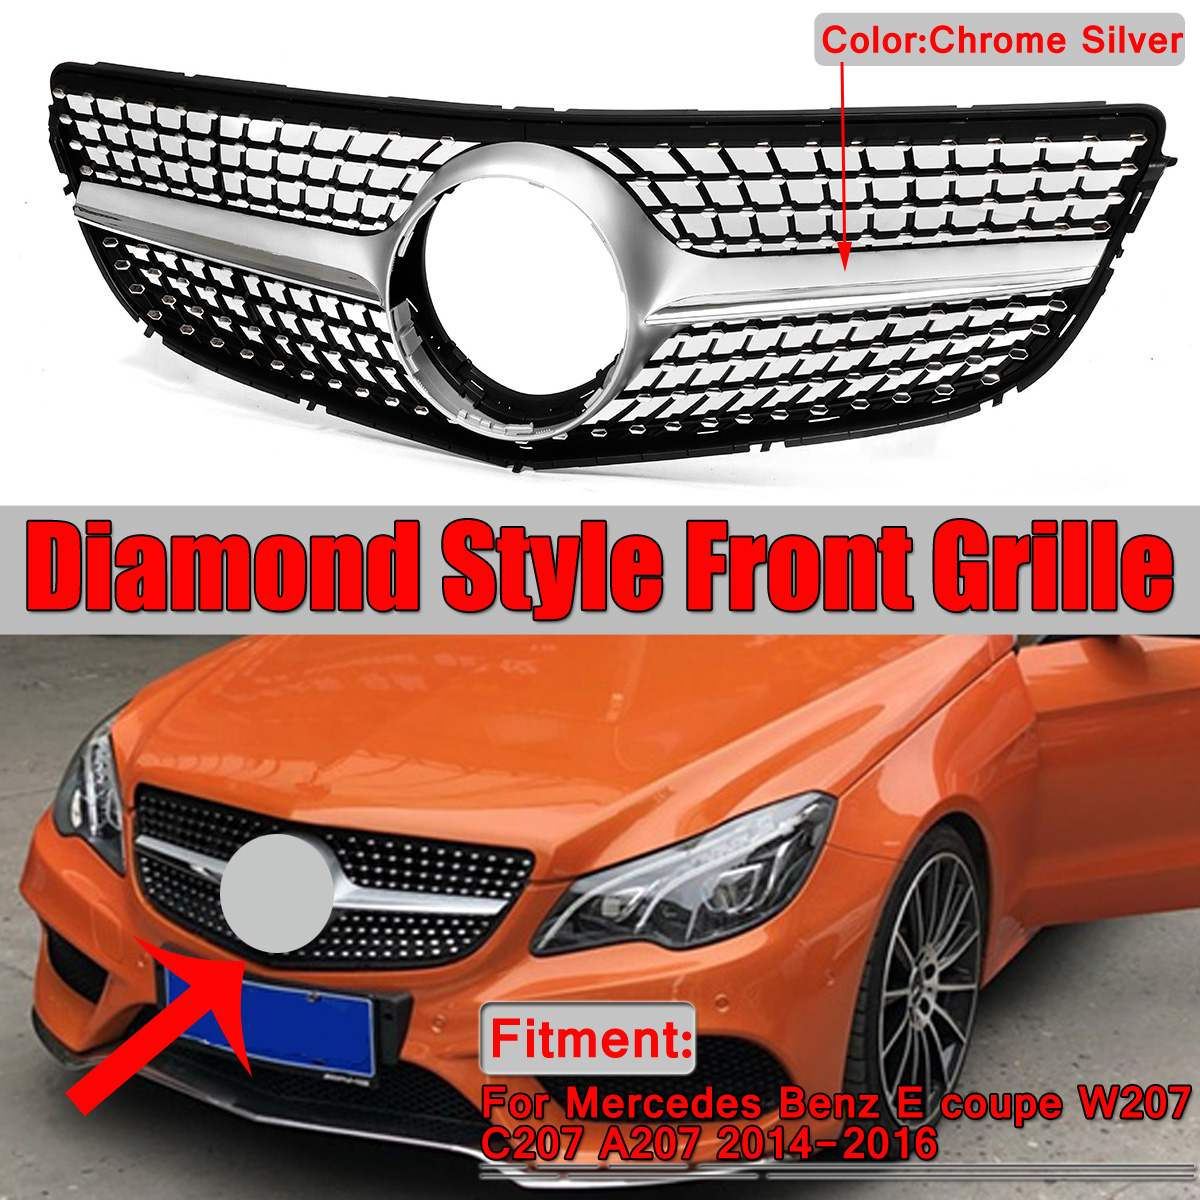 New Chrome W207 C207 A207 Diamond Grill Car Front Bumper Grill Grille For Mercedes For Benz E For Coupe W207 C207 A207 2014-2016New Chrome W207 C207 A207 Diamond Grill Car Front Bumper Grill Grille For Mercedes For Benz E For Coupe W207 C207 A207 2014-2016